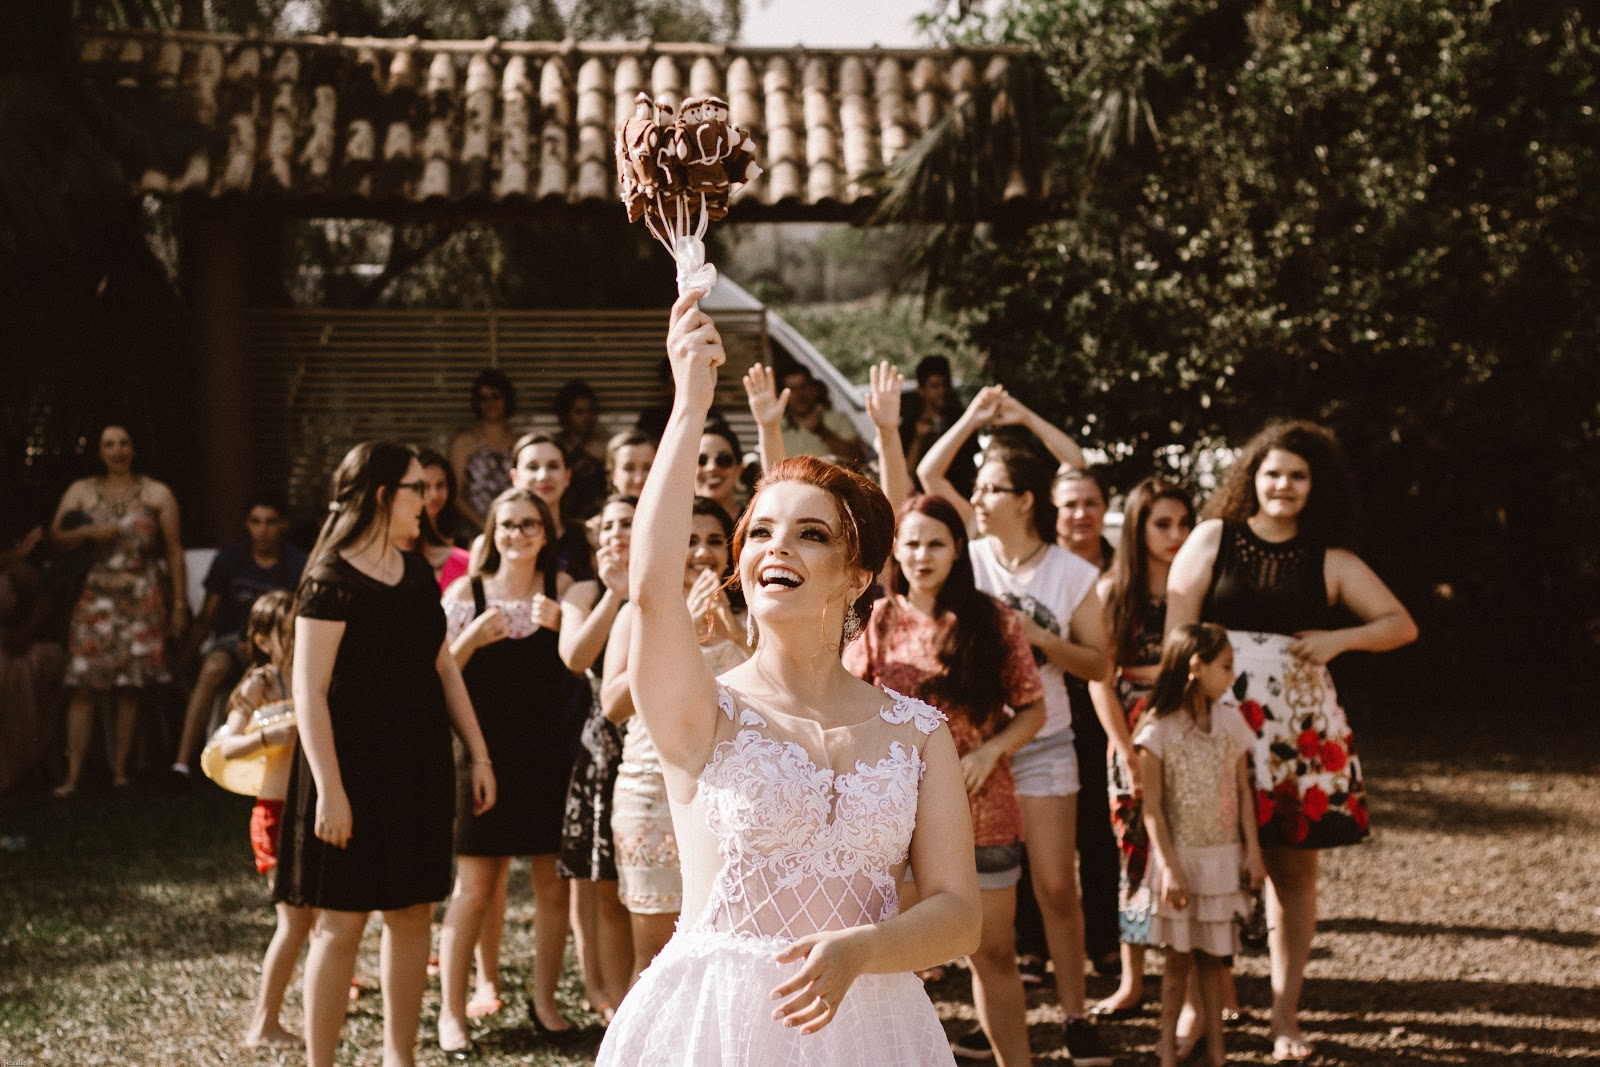 How To Learn Wedding Photography: Wedding Photography: 5 Tips To Make The Bride And Groom